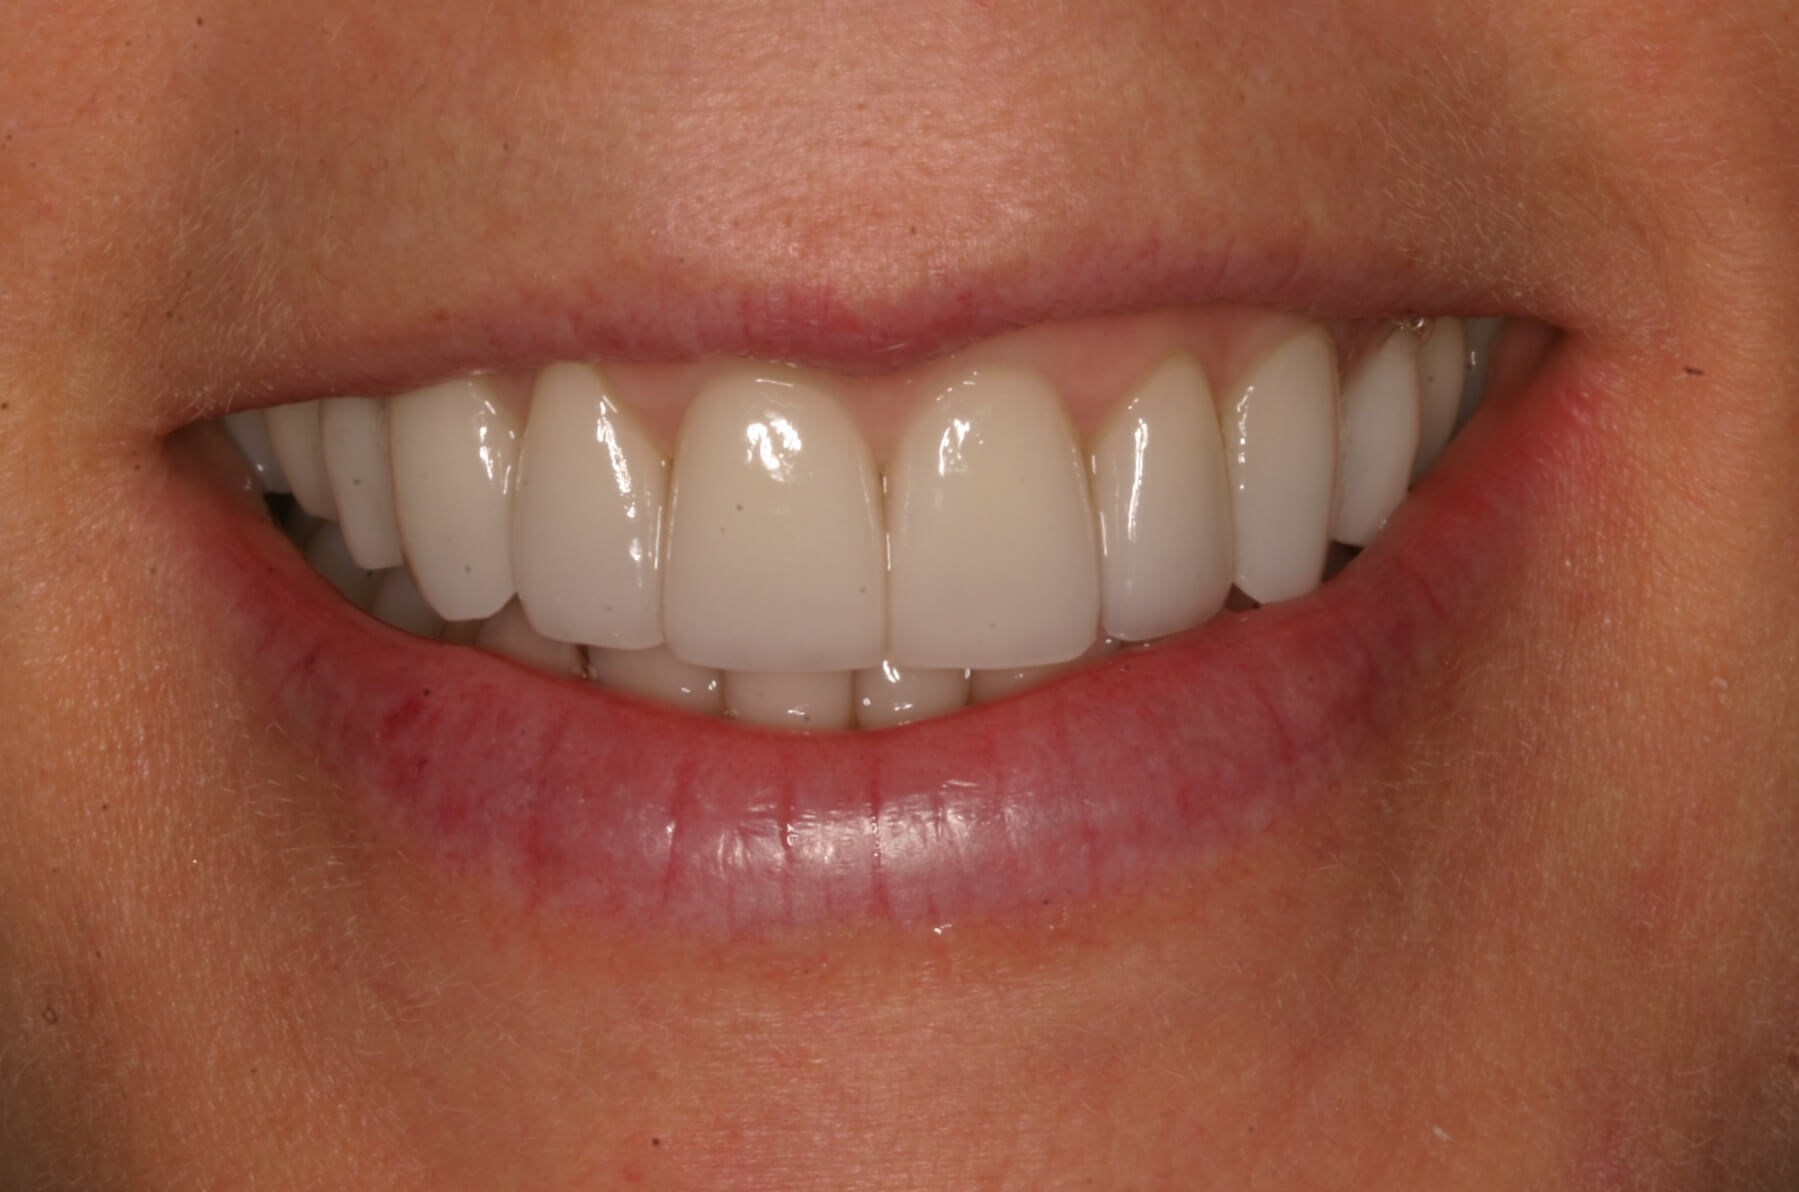 Two Weeks, A Beautiful Smile! After